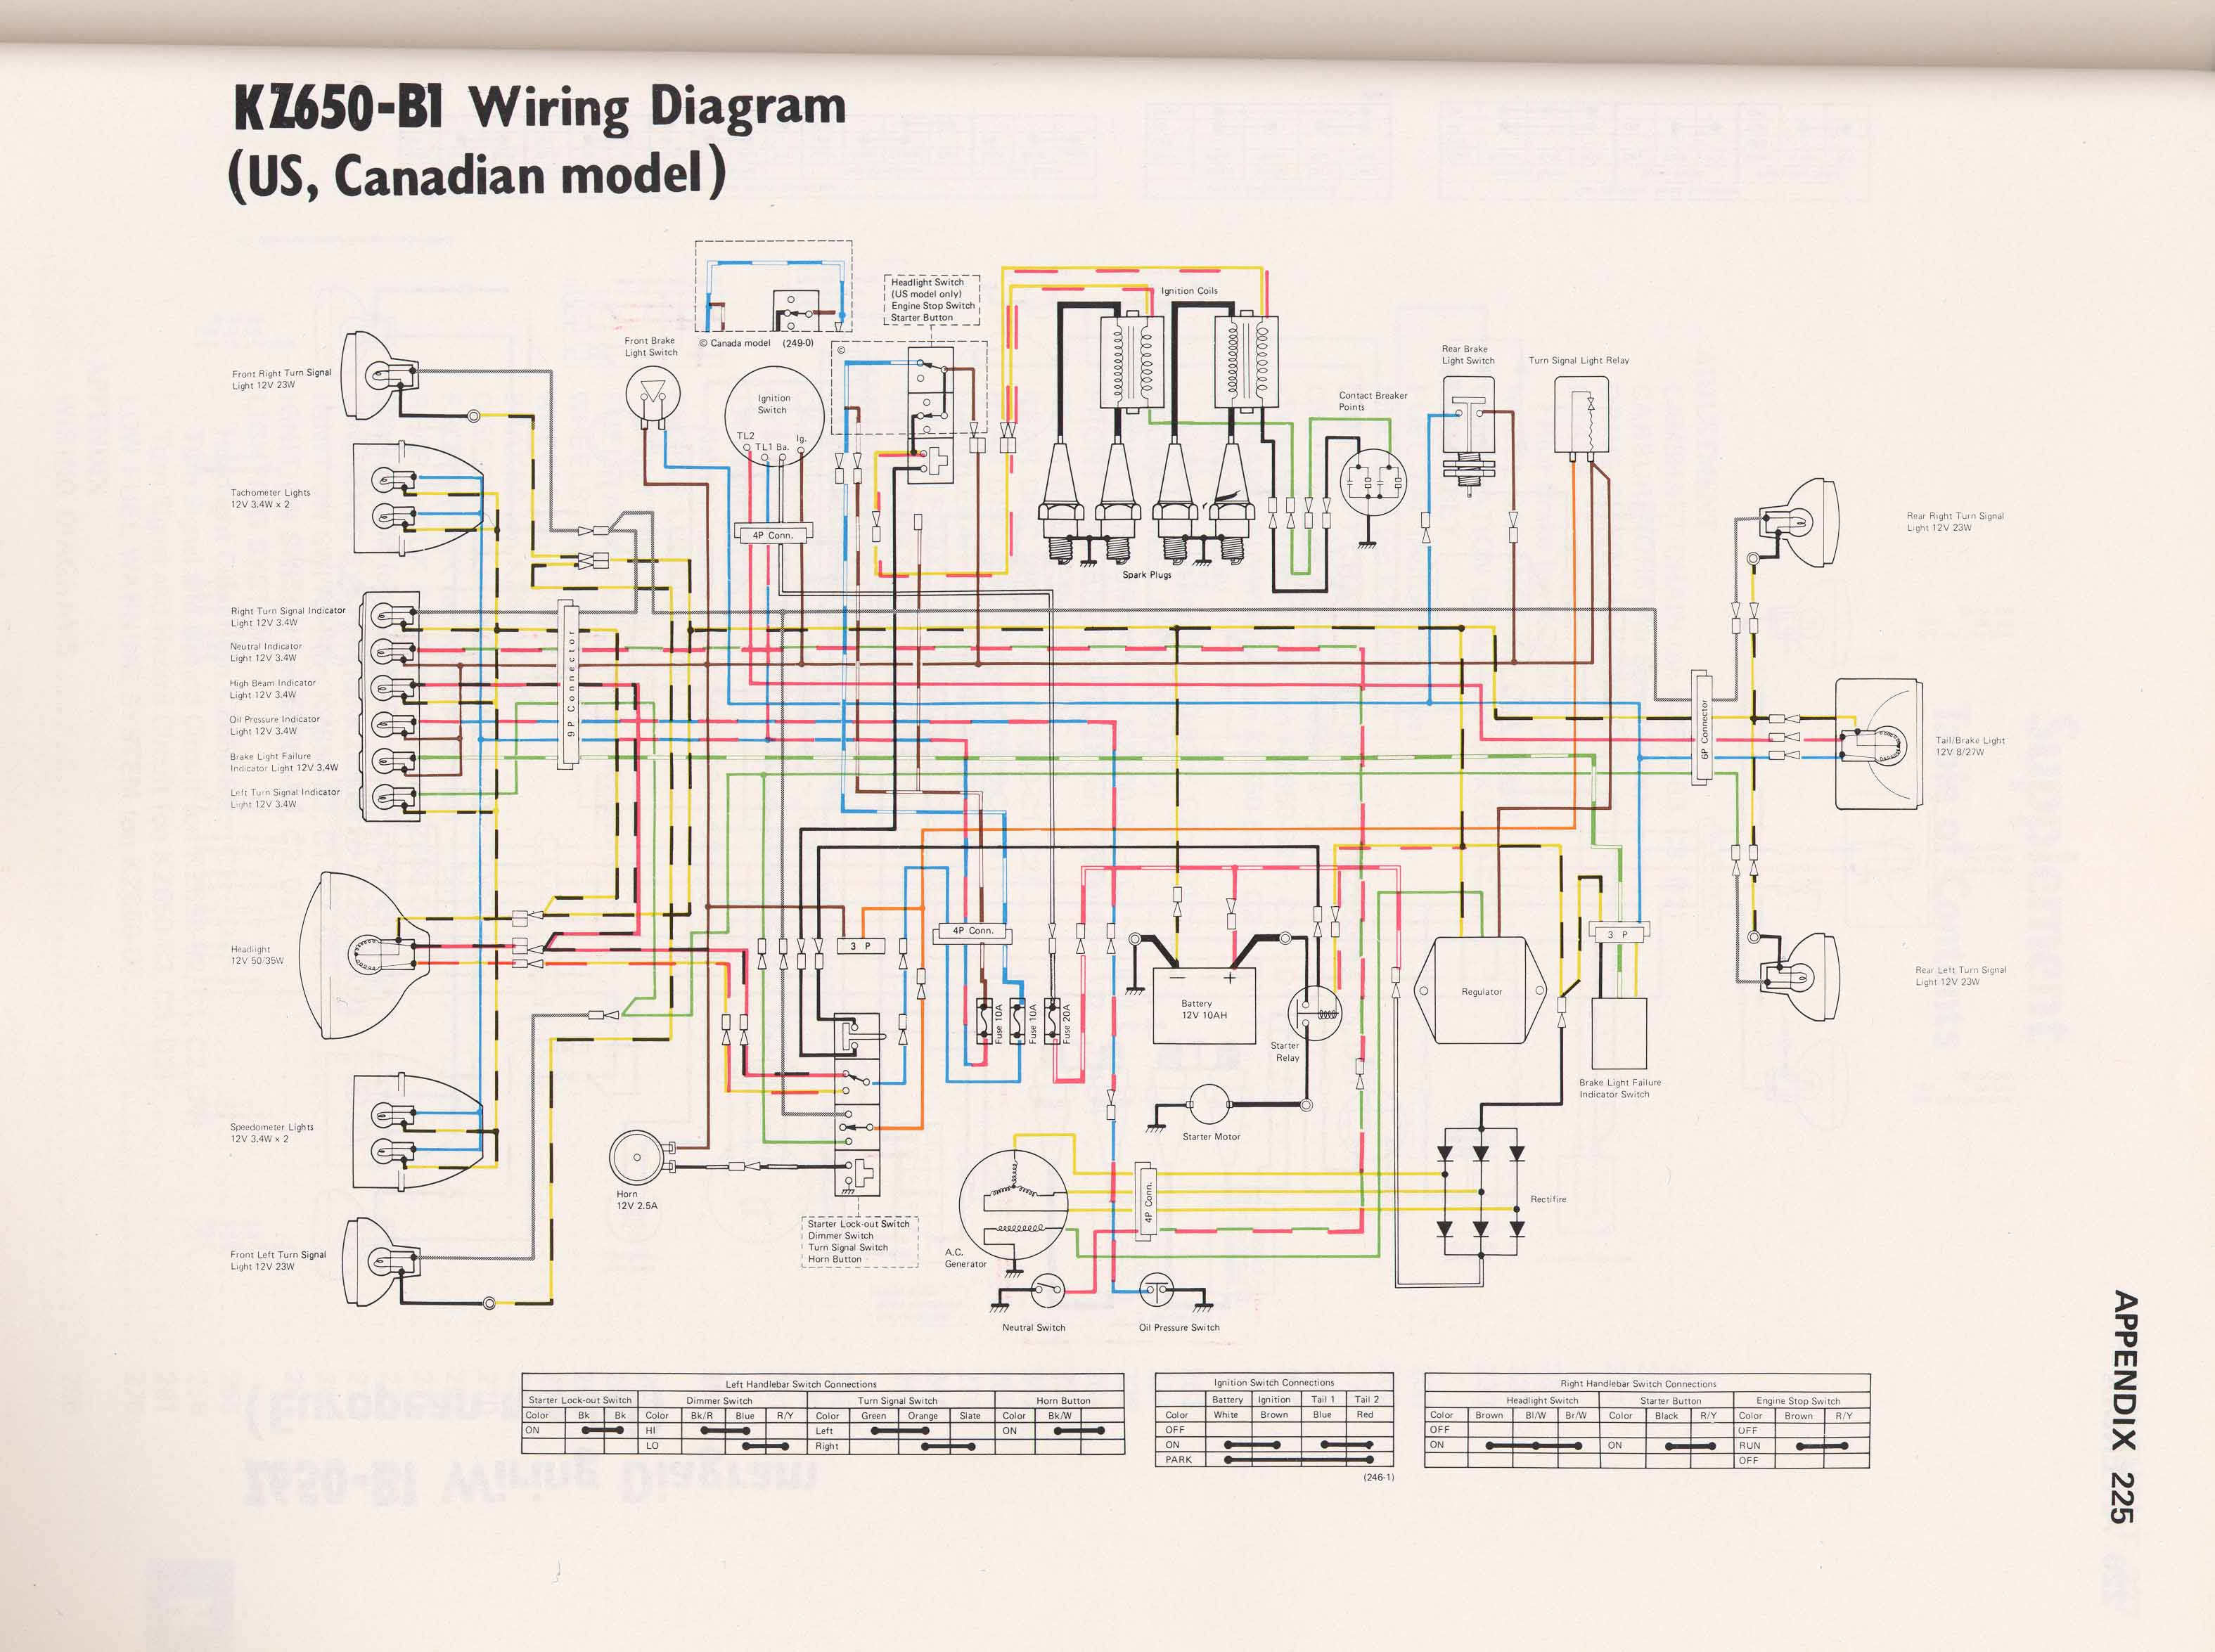 KZ650 B1 kz650 info wiring diagrams kawasaki z750 wiring diagram at eliteediting.co